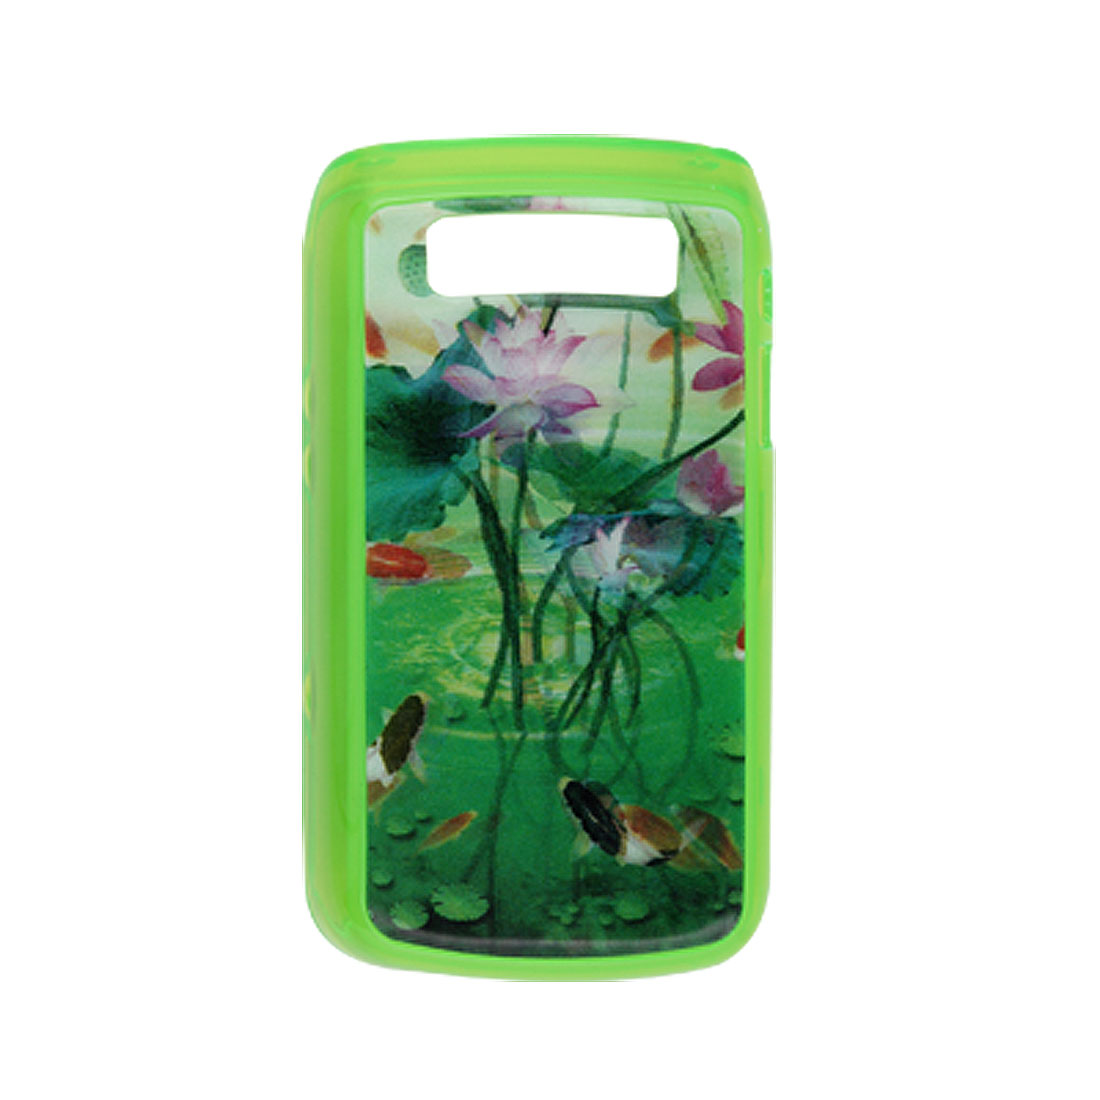 3D Lotus Green Plastic Back Case for Blackberry 9700